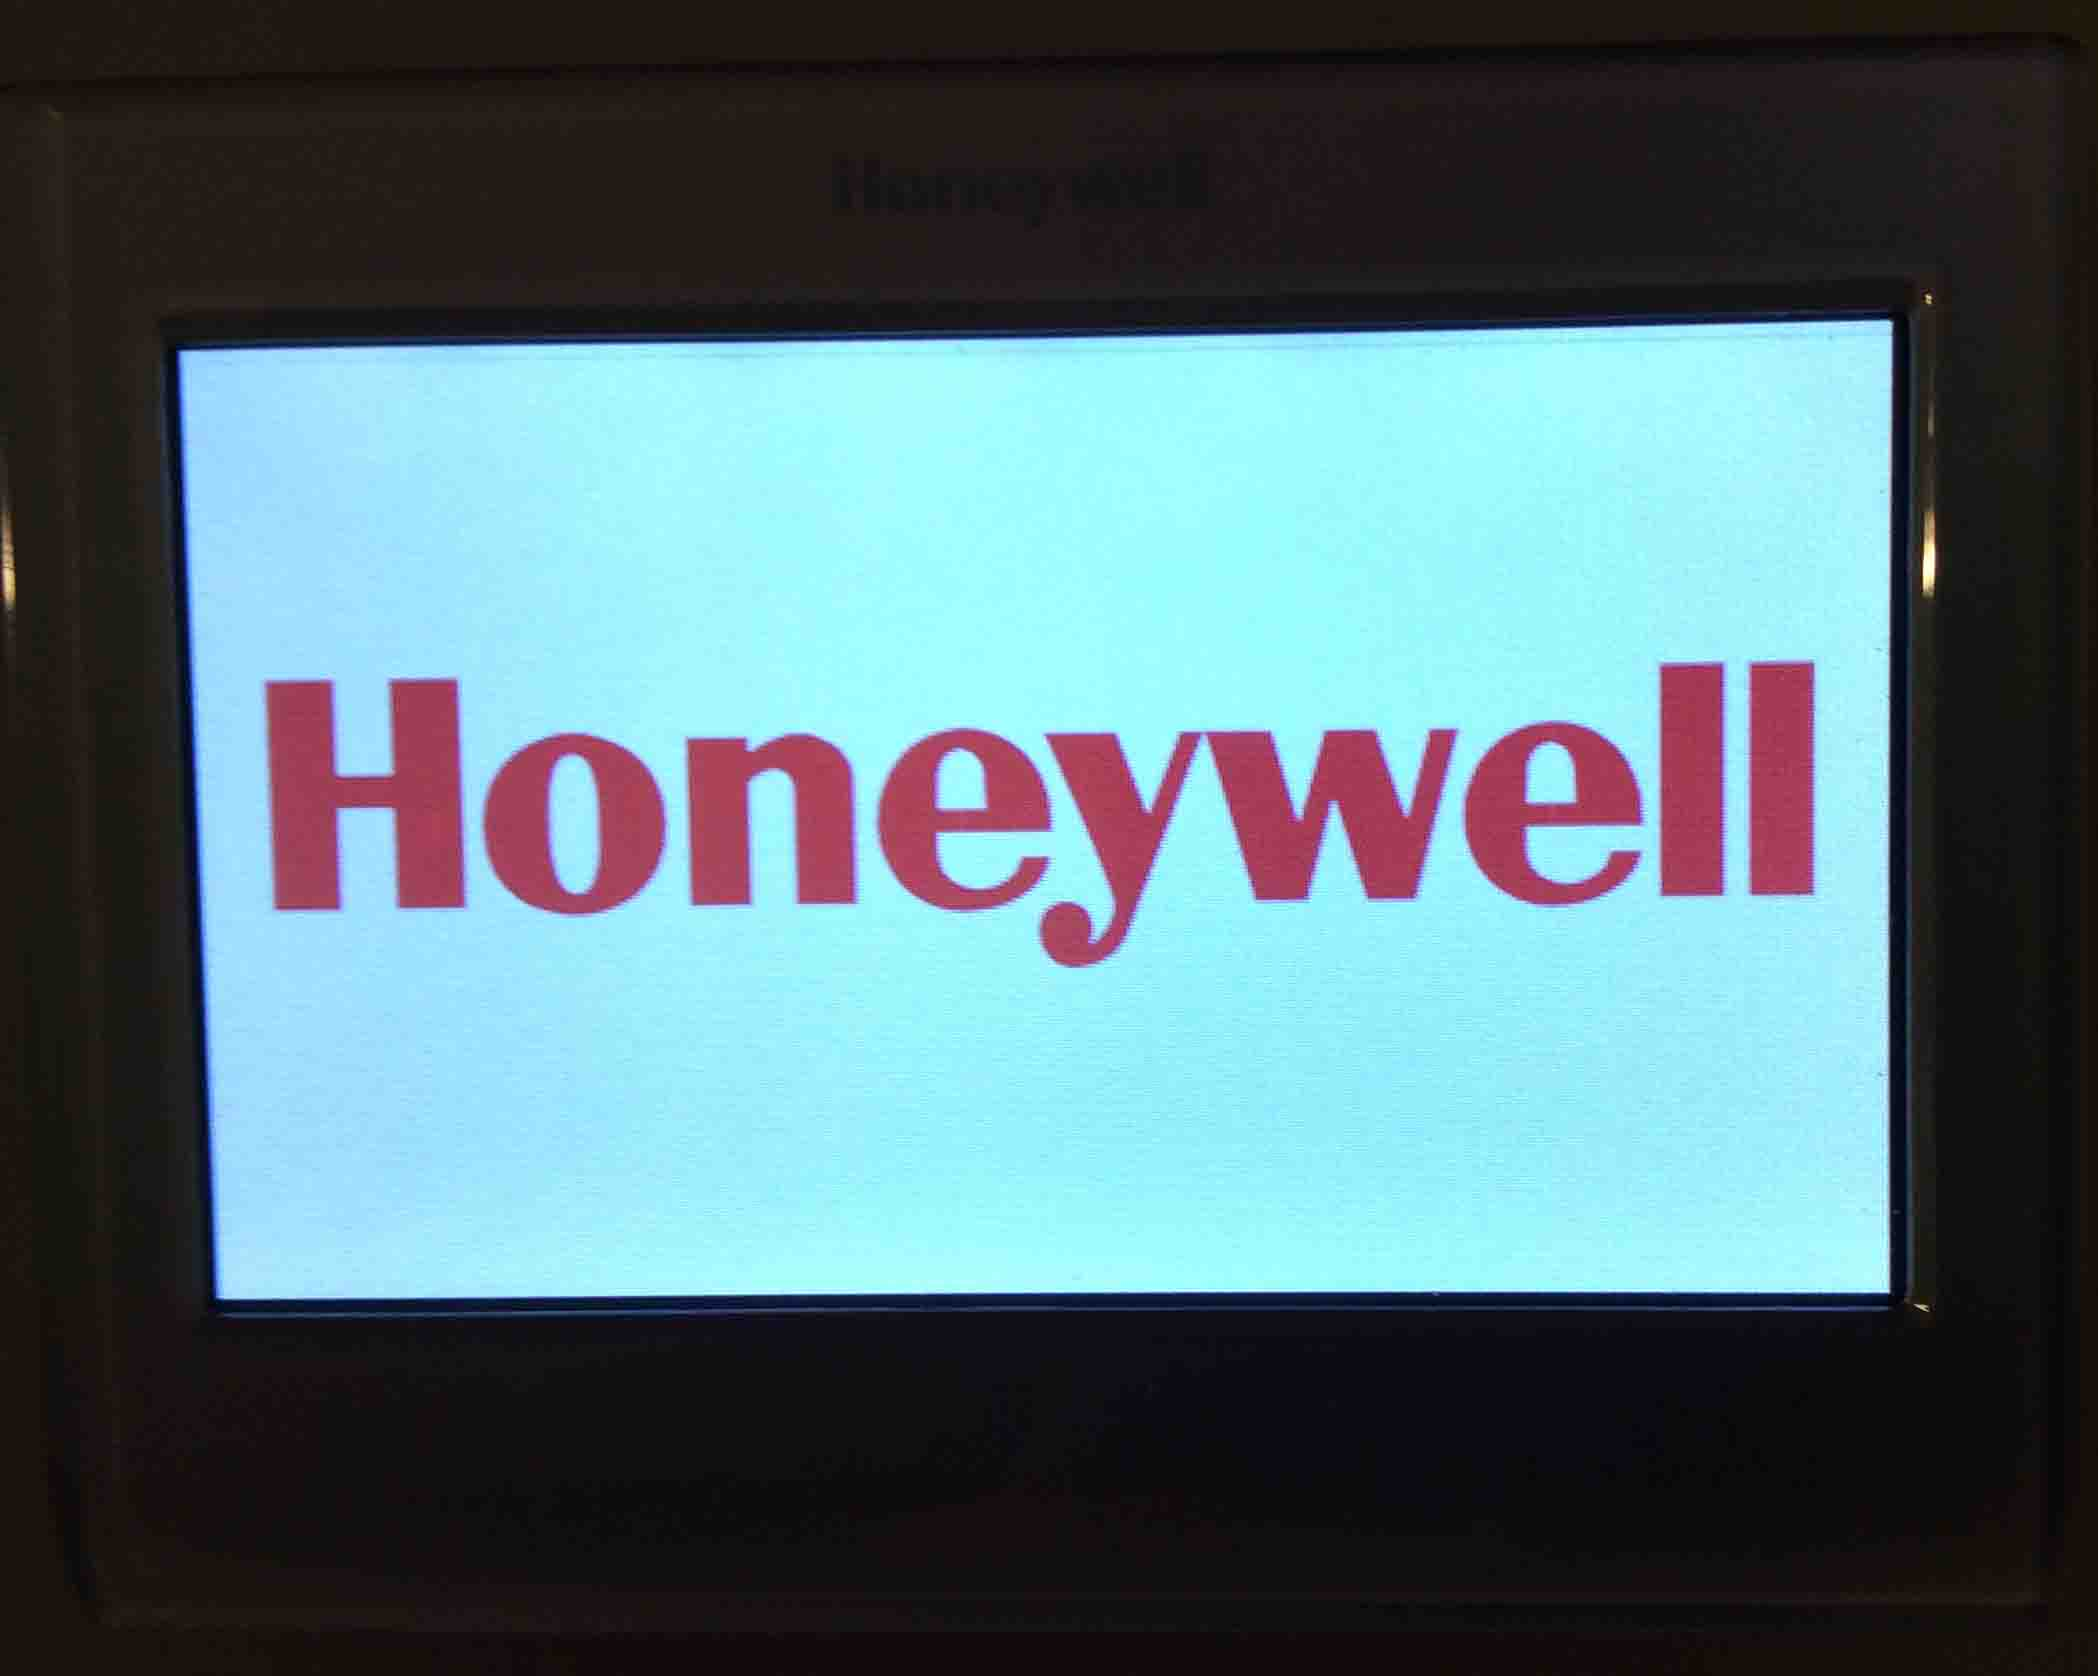 Honeywell Smart Thermostat Wiring Instructions Rth9580wf Toms Tek Wi Fi Diagram Picture Of The Displaying Boot Screen